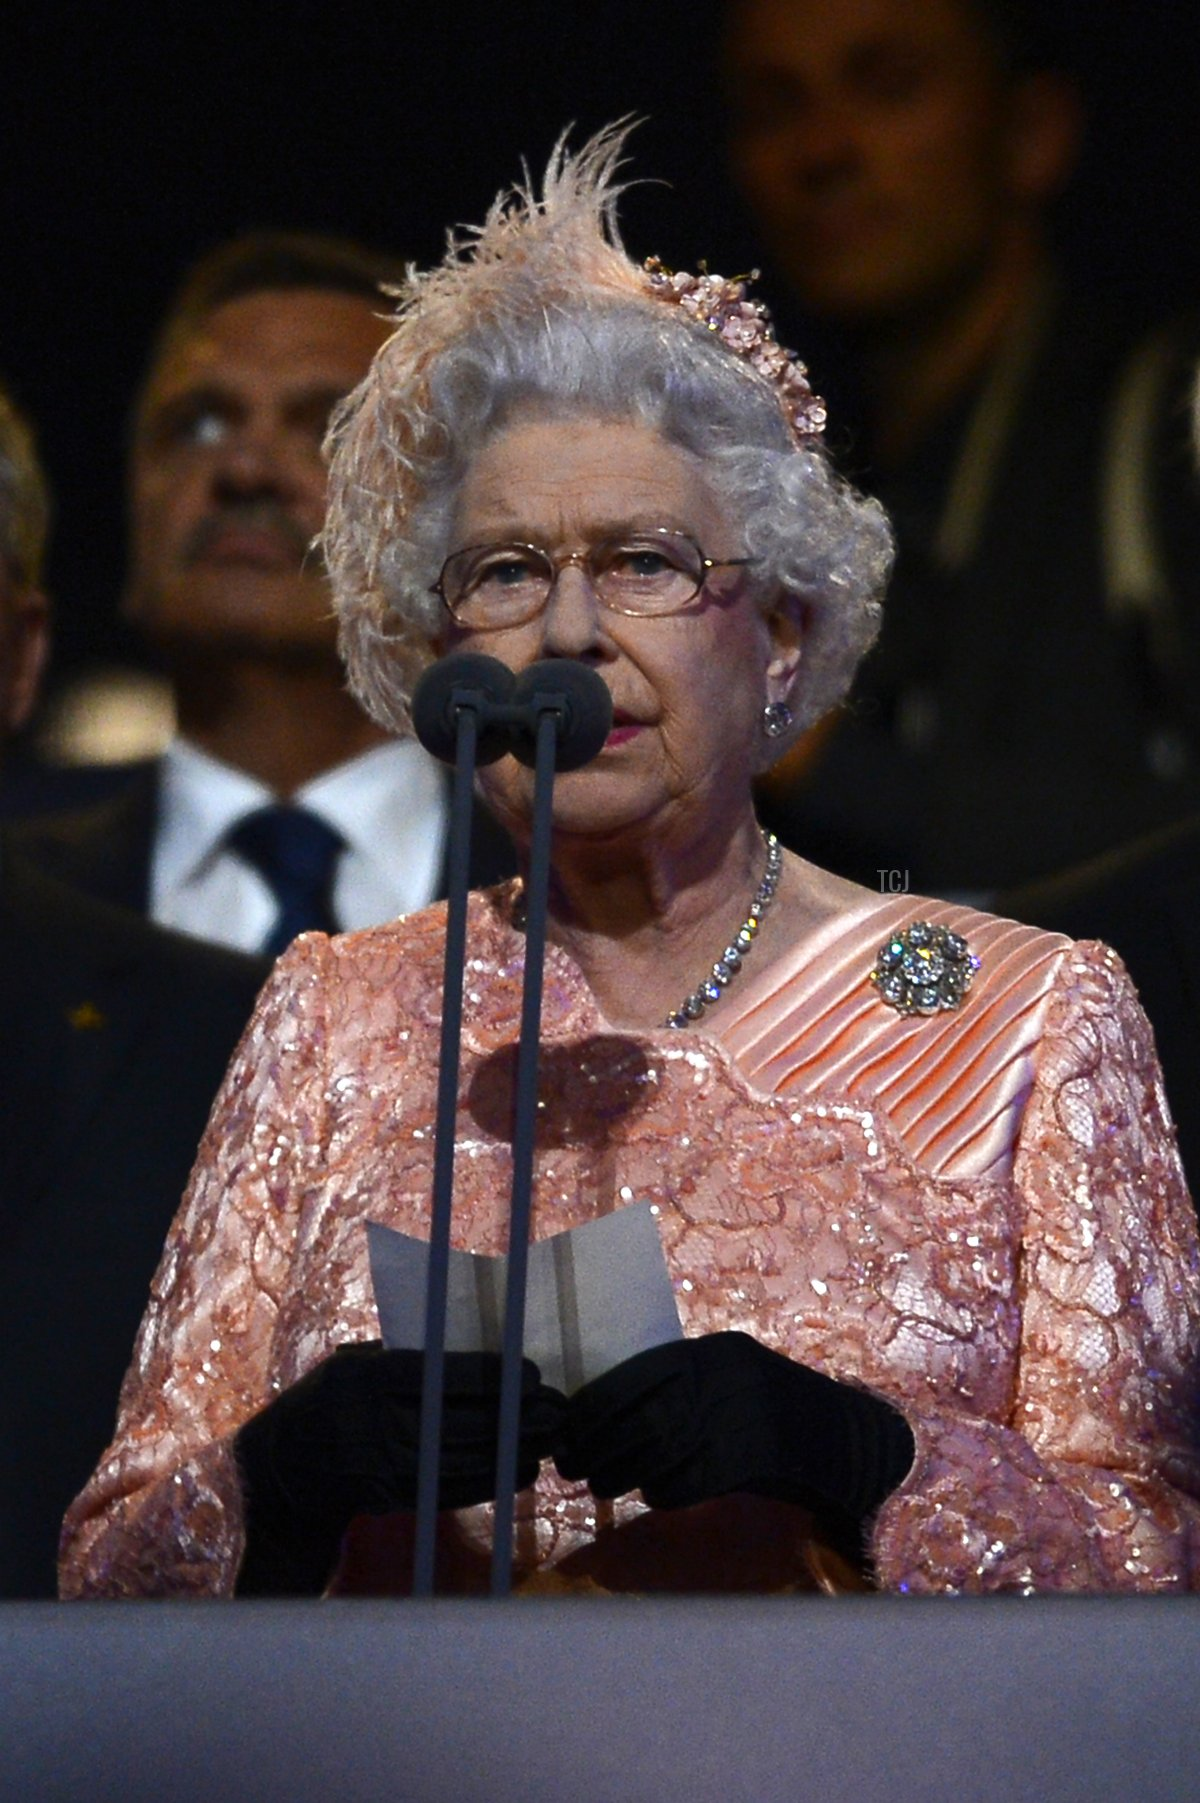 Britain's Queen Elizabeth II declares the London 2012 Olympic Games open during the opening ceremony on July 27, 2012 at the Olympic Stadium in London